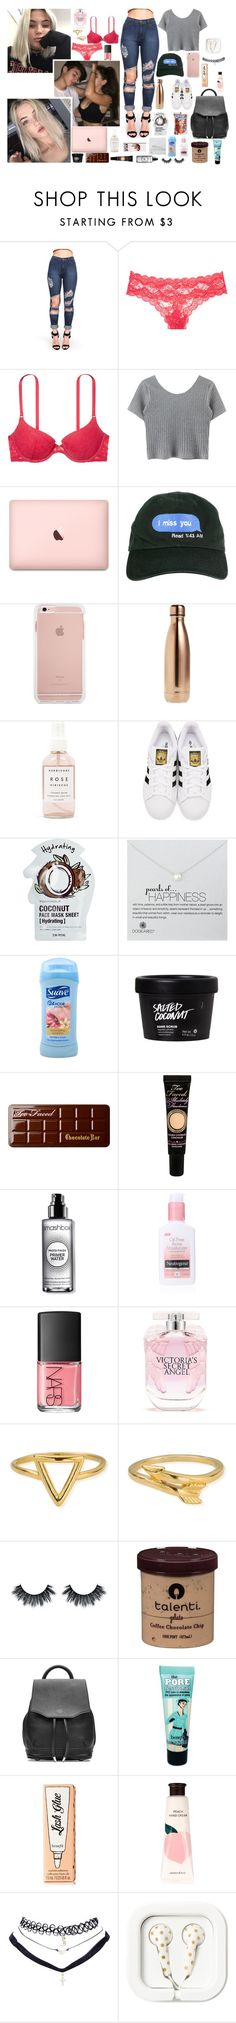 """""""' she's a bad thing , sh.it. fine as hell , thick as f.uck '"""" by d3structionxx ❤ liked on Polyvore featuring Victoria's Secret, S'well, Herbivore, adidas Originals, Tony Moly, Dogeared, Suave, Too Faced Cosmetics, Smashbox and Neutrogena"""